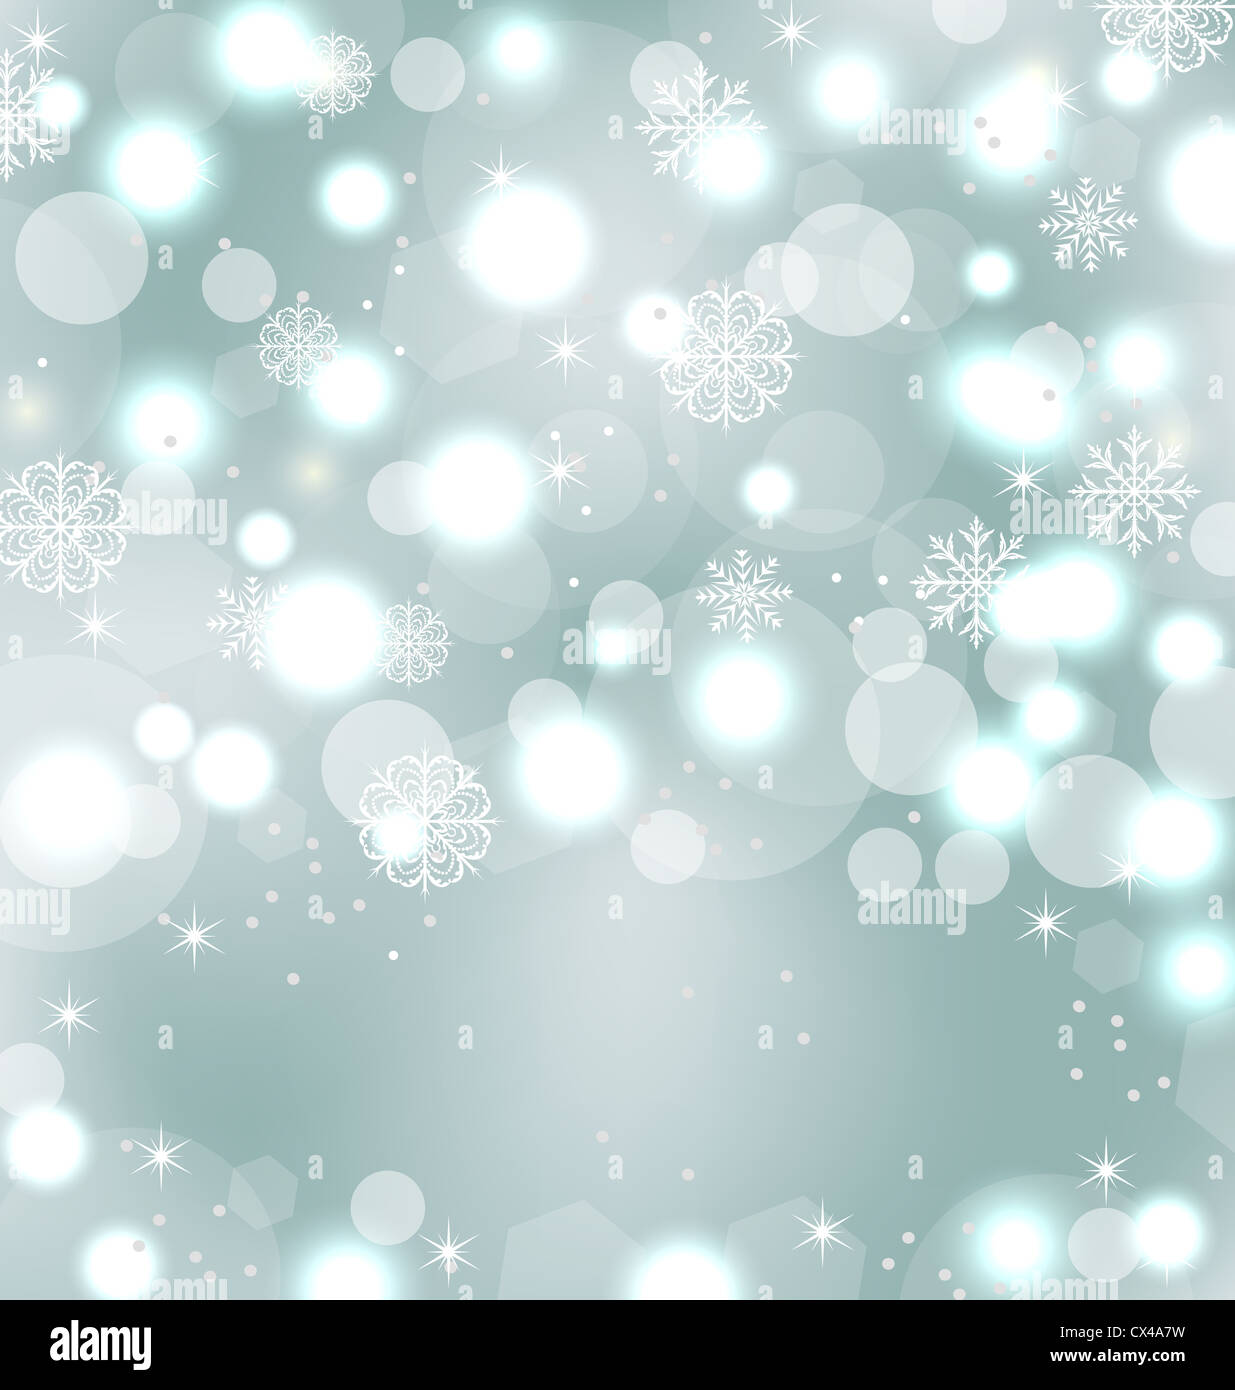 Illustration Christmas Cute Wallpaper With Sparkle Snowflakes